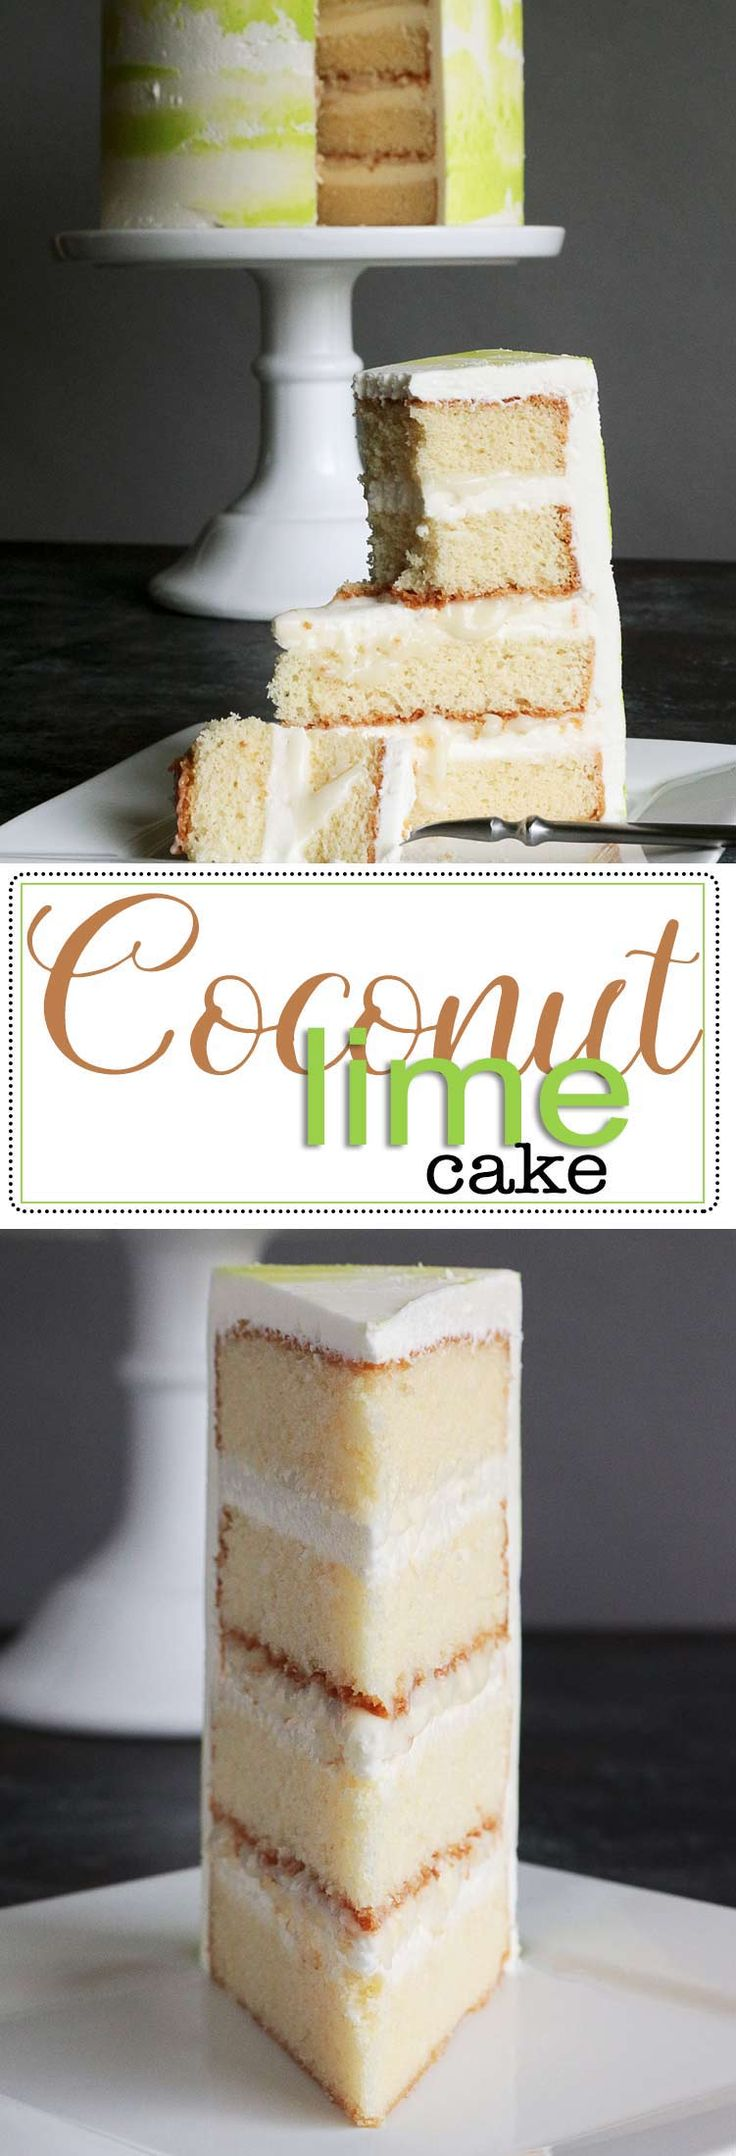 Light, Fluffy, and Tender Coconut Lime Cake - Perfect for the summer. This is the last coconut cake recipe you'll ever need. Get this scratch recipe now via @karascakes